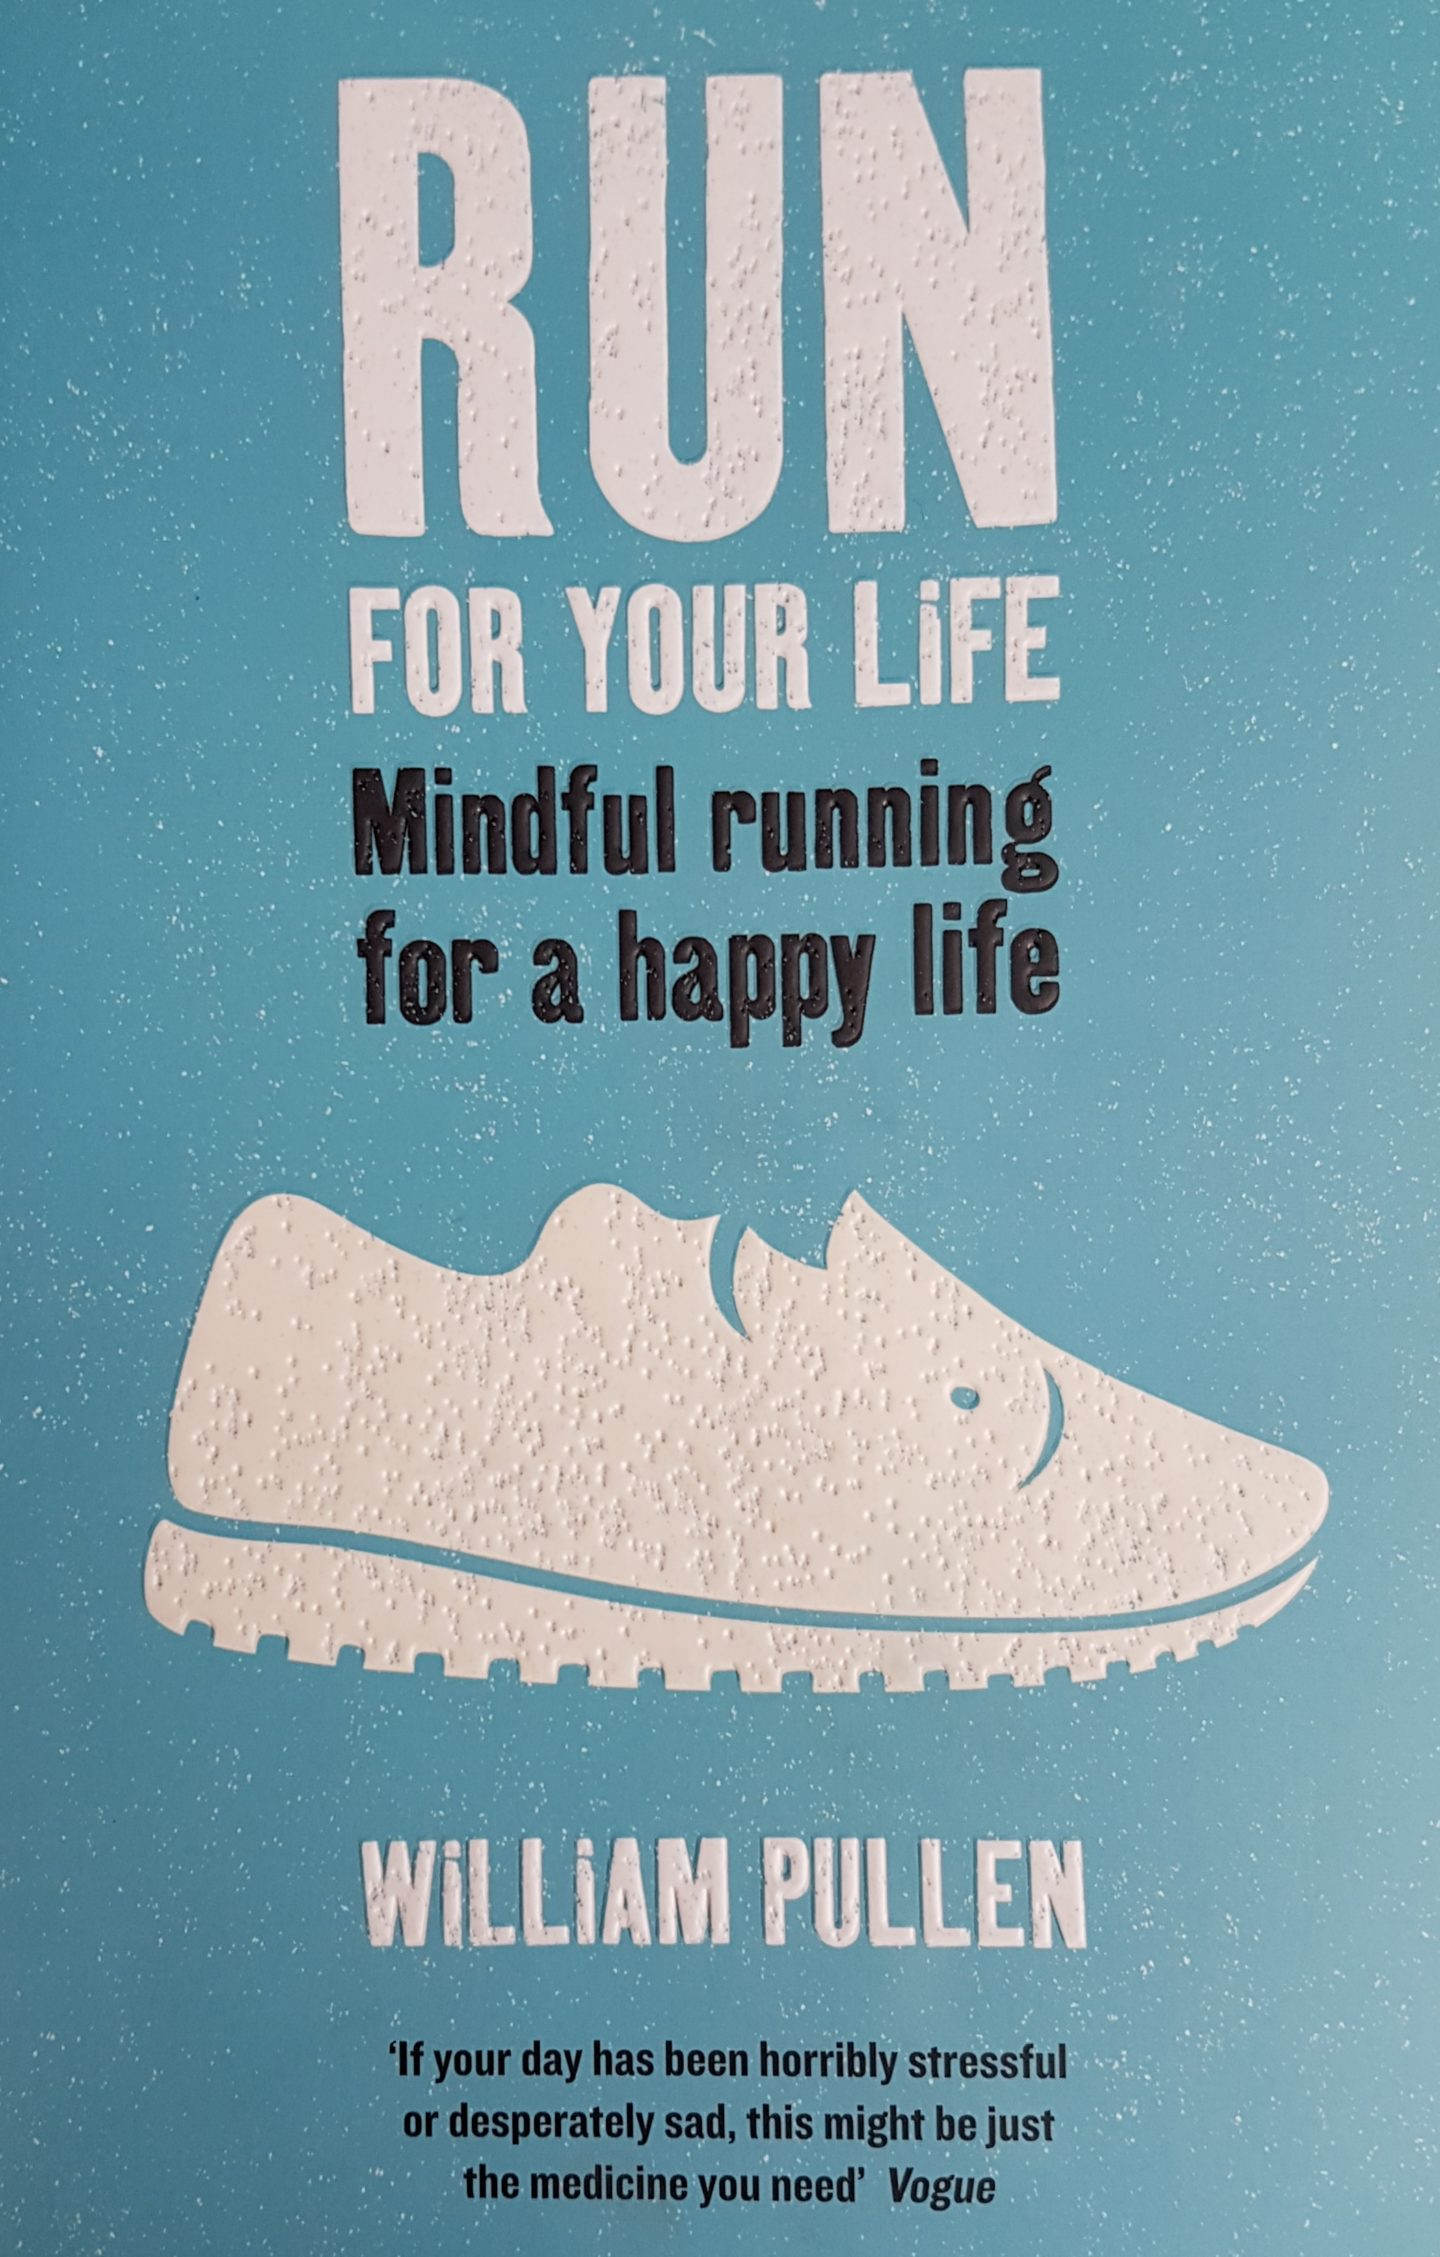 Mindful running for a happy life Run for Your Life William Pullen a review Mind your Mamma